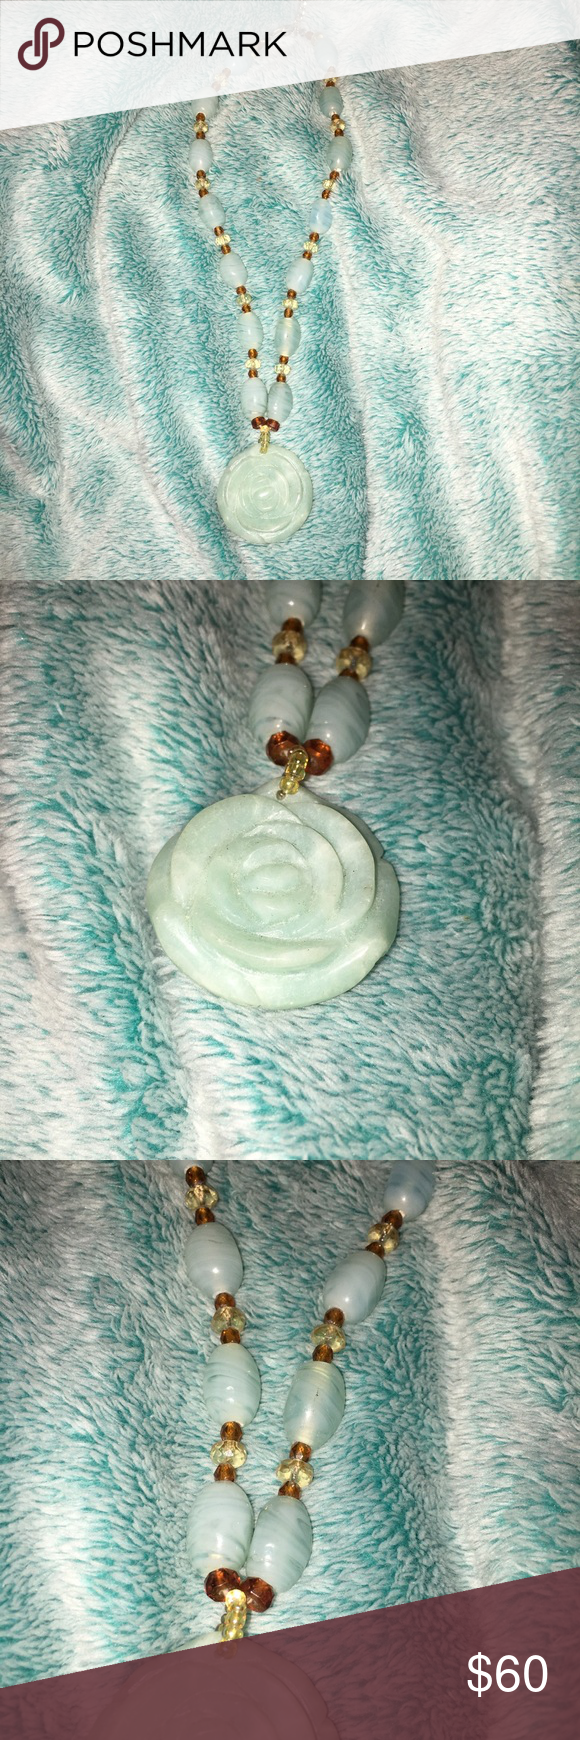 Vintage marble flower necklace Brand new in my boutique today! Vintage Marble that's been carved into a flower for the pendant and matching beads for the chain. Offers are welcome 🙂 Boutique Jewelry Bracelets